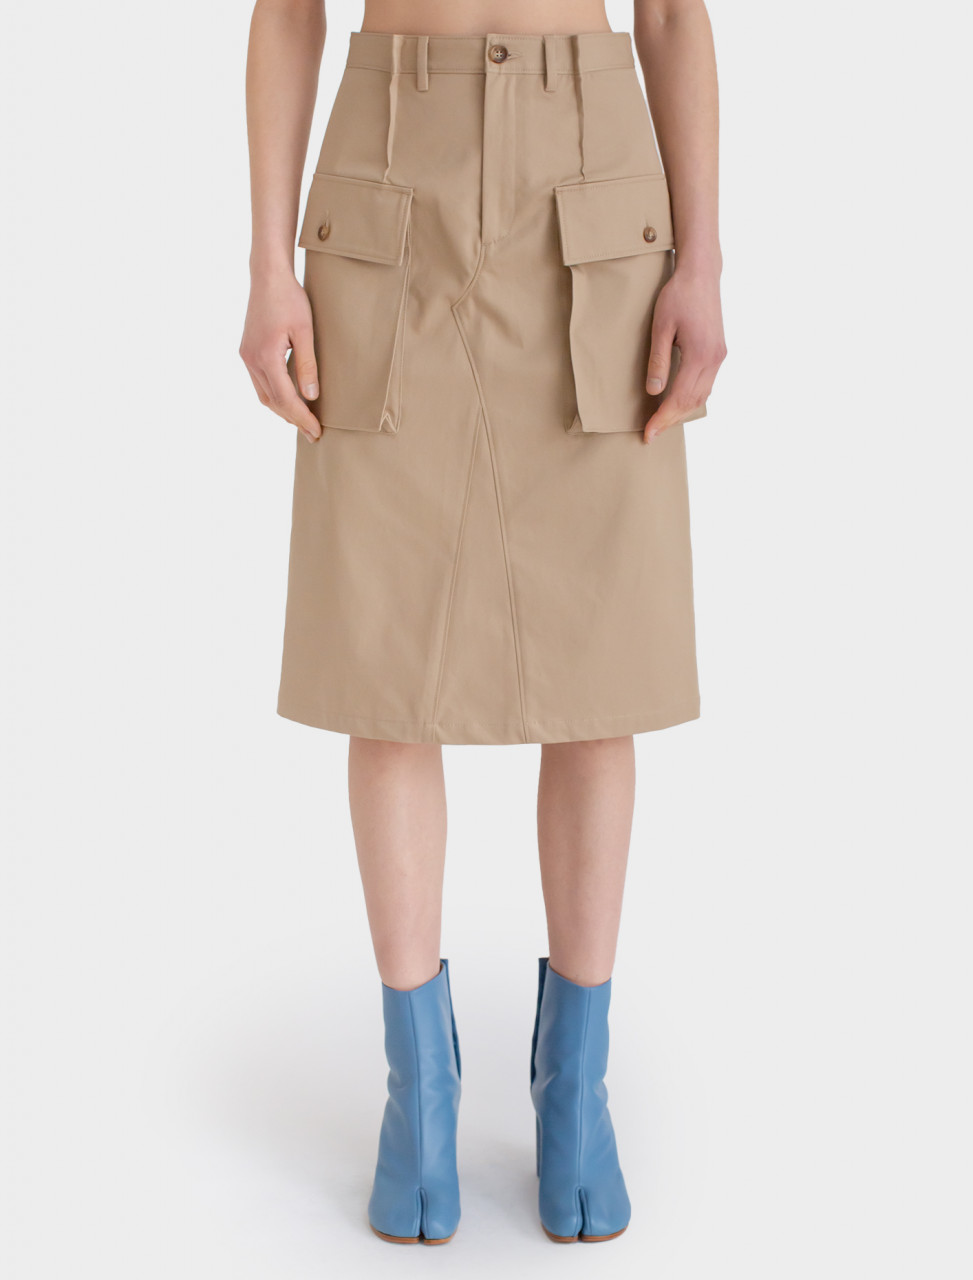 Maison Margiela Skirt with Large Pockets